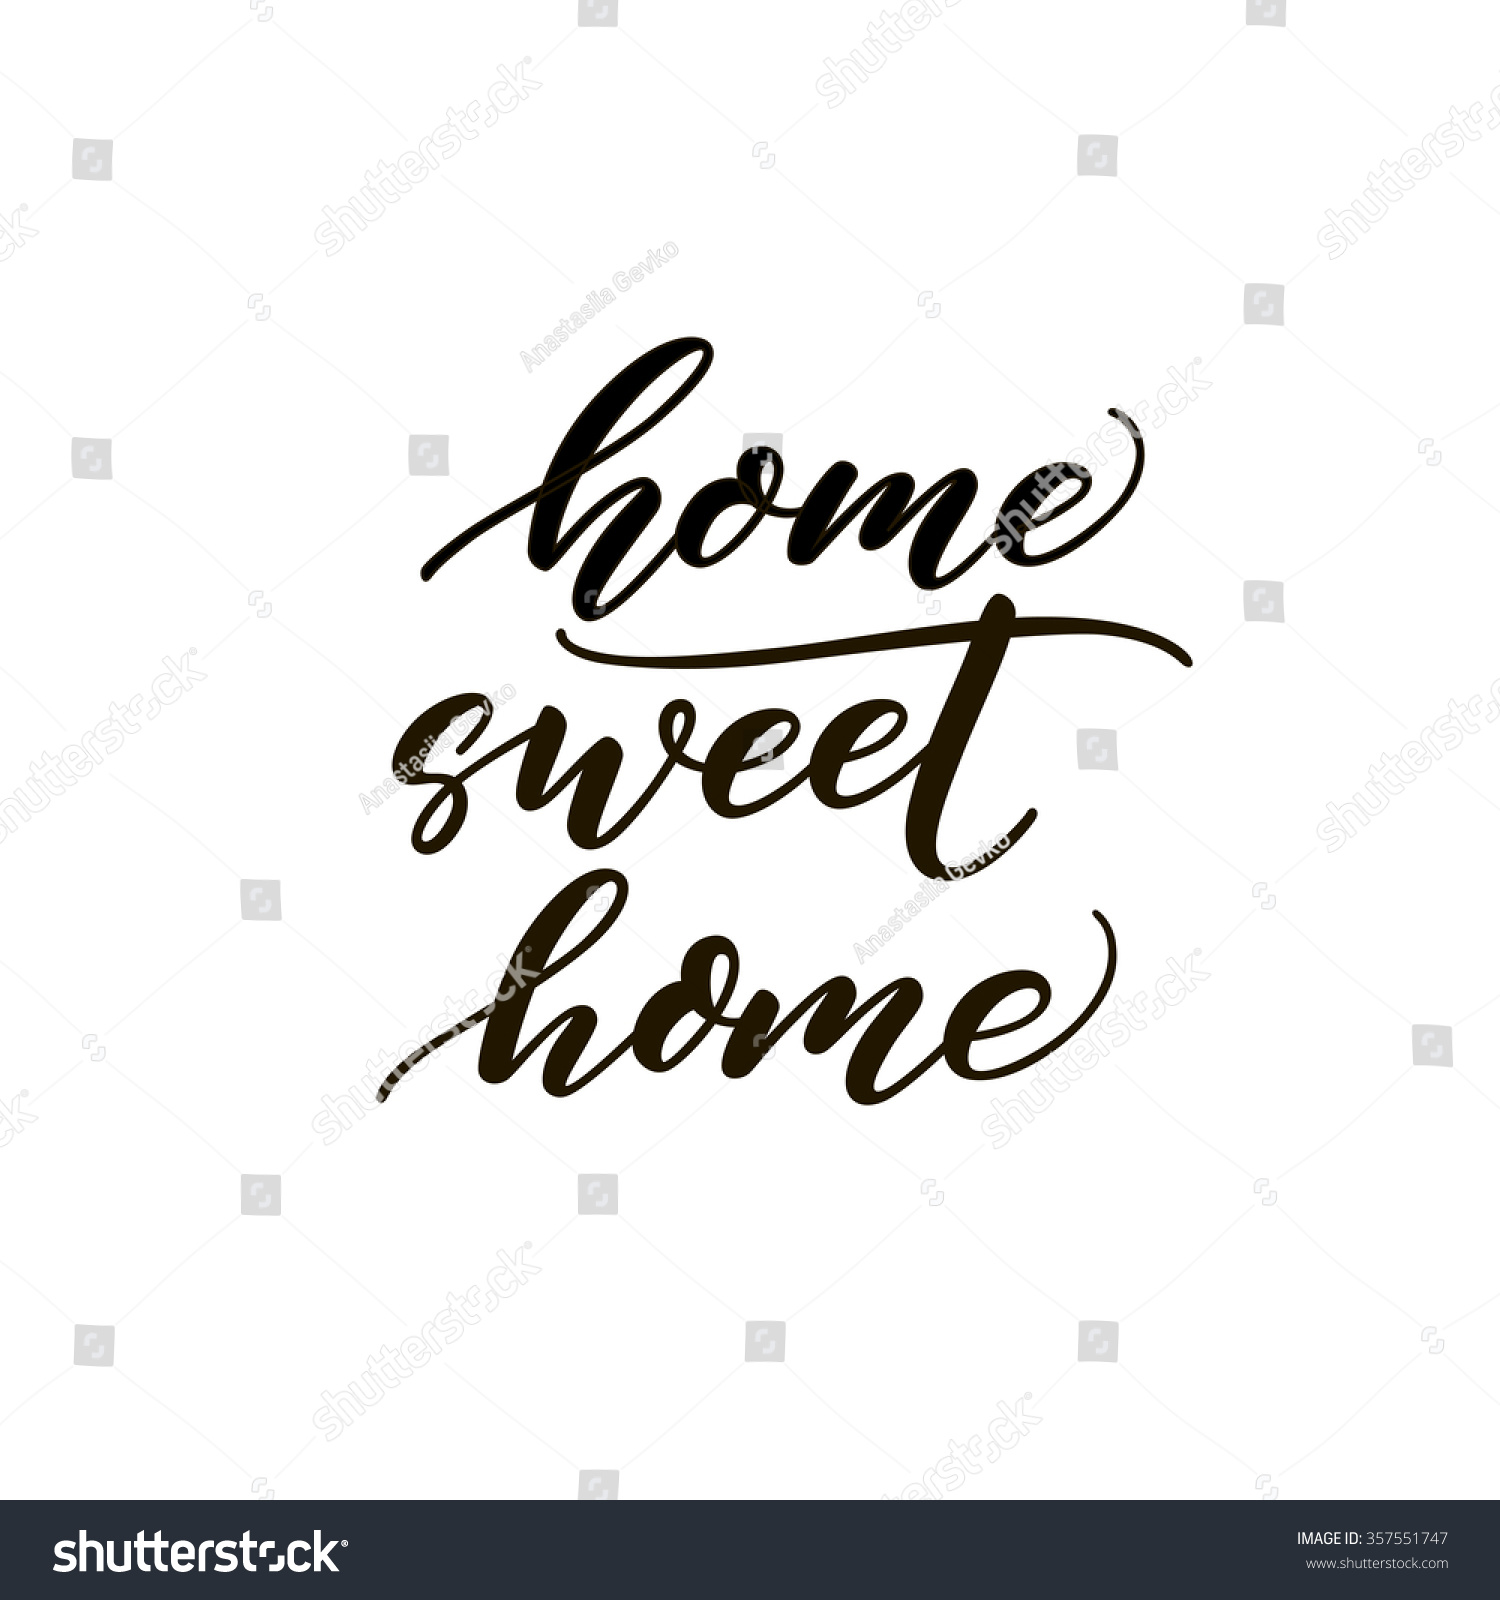 Home sweet card hand drawn lettering modern